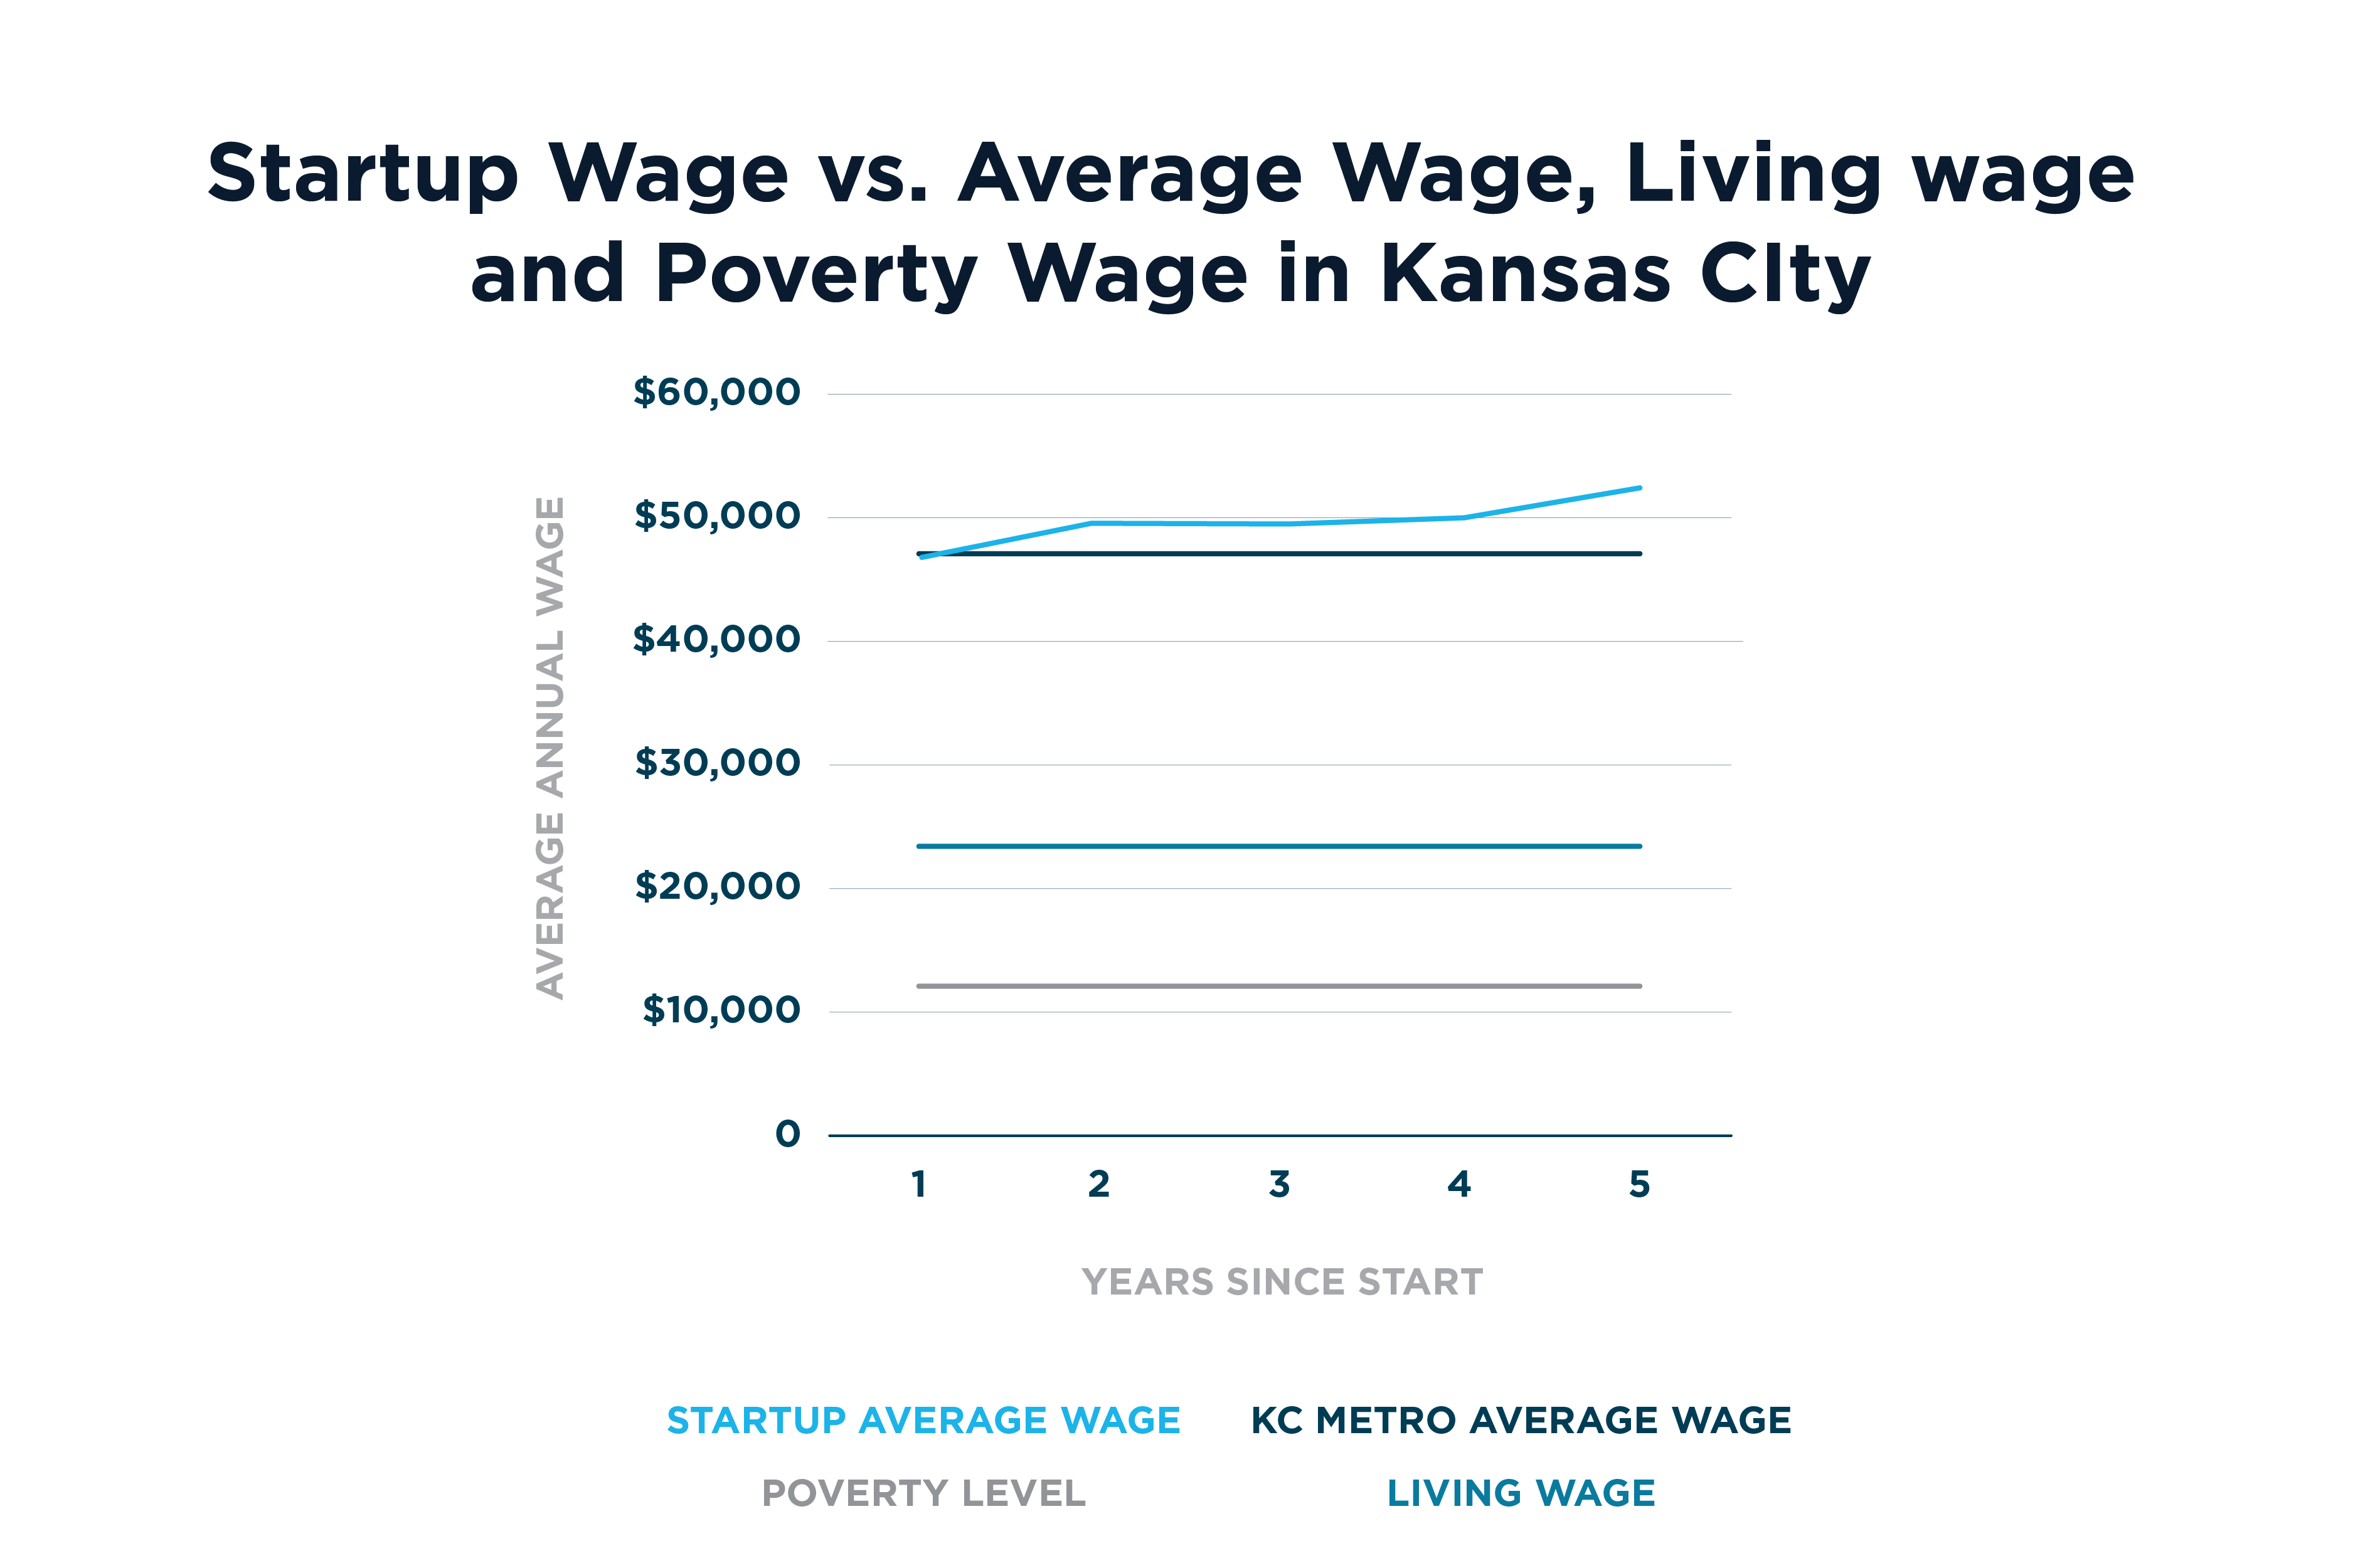 Average Wages of Kansas City Startups Compared to Average Wage, Living Wage and Poverty Level